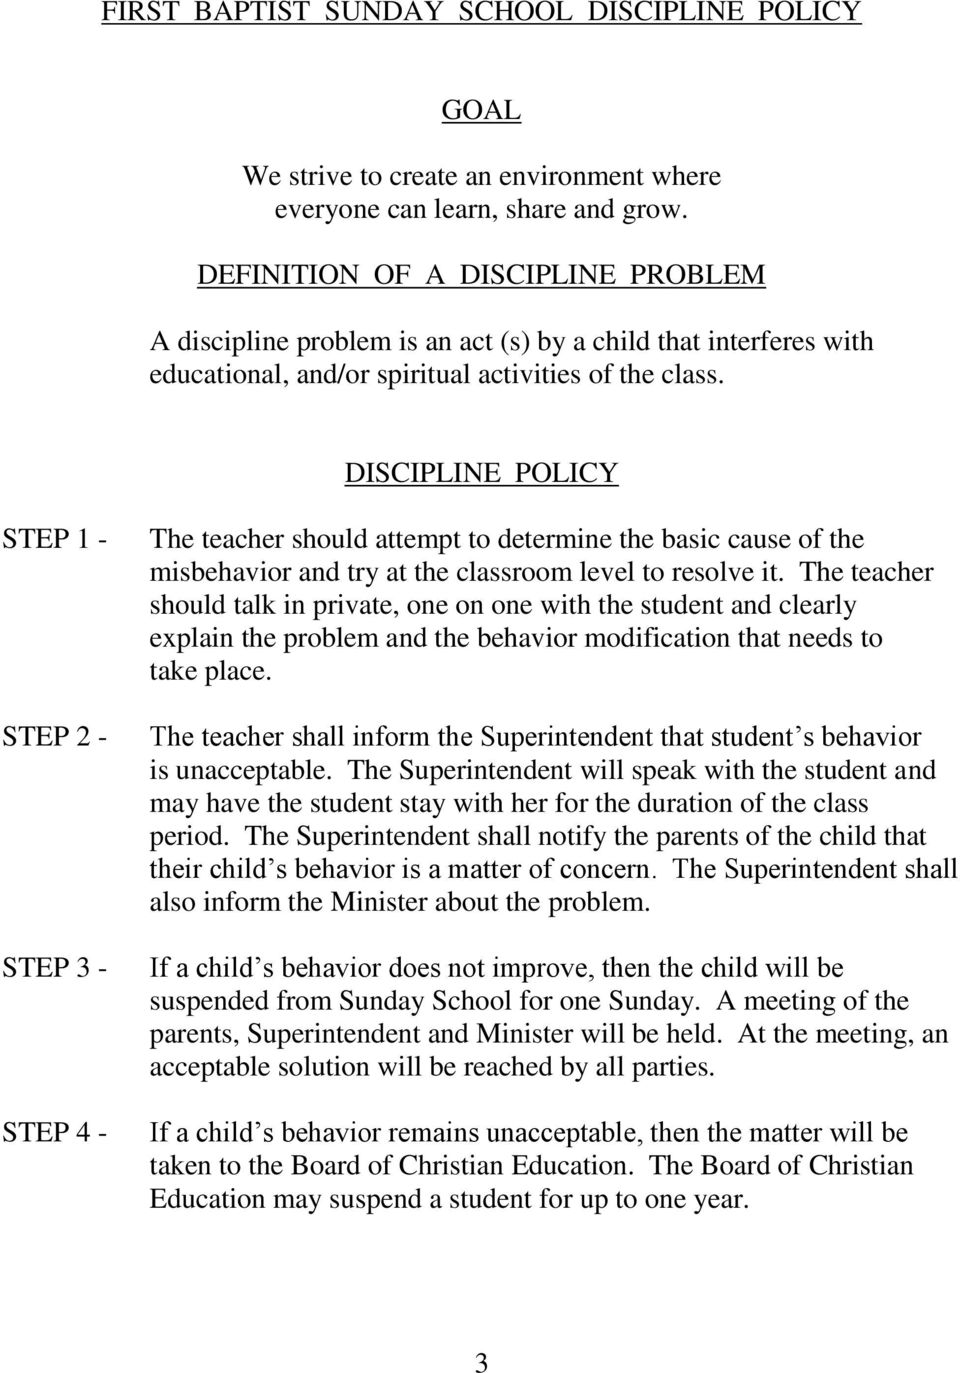 DISCIPLINE POLICY STEP 1 - STEP 2 - STEP 3 - STEP 4 - The teacher should attempt to determine the basic cause of the misbehavior and try at the classroom level to resolve it.